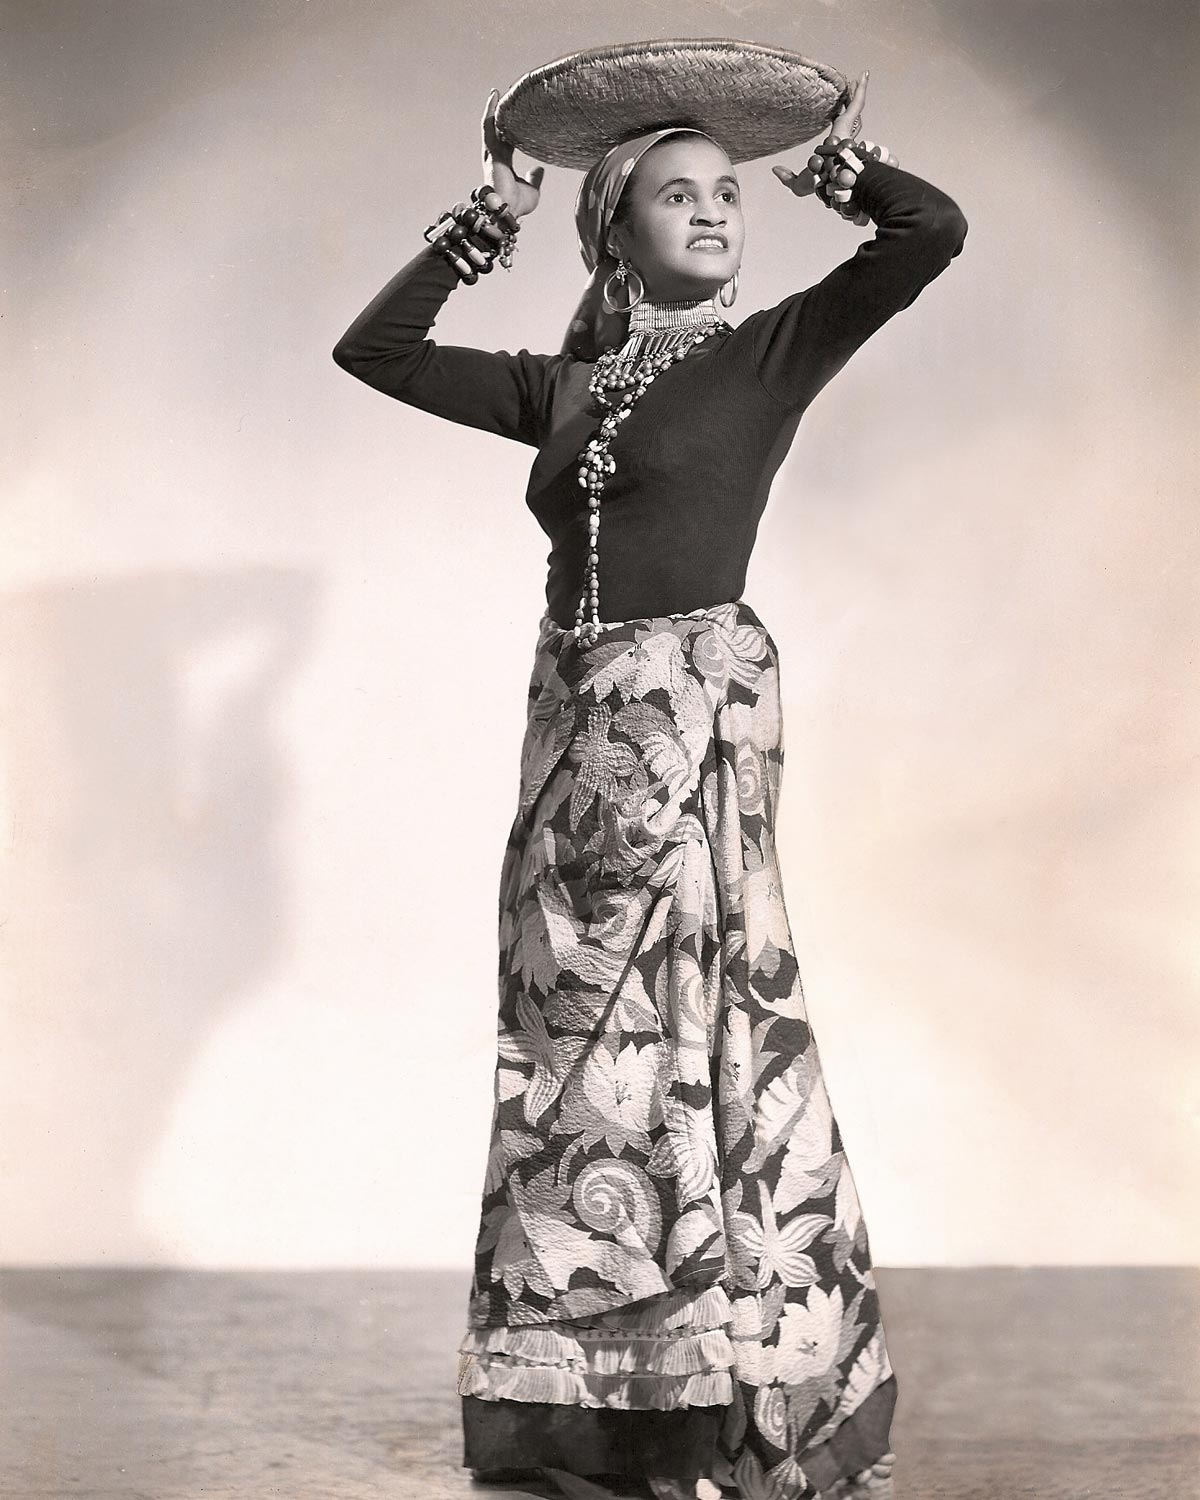 Beryl McBurnie, in the days when she used the stage name of La Belle Rosette. Photograph courtesy the Ray Funk Collection